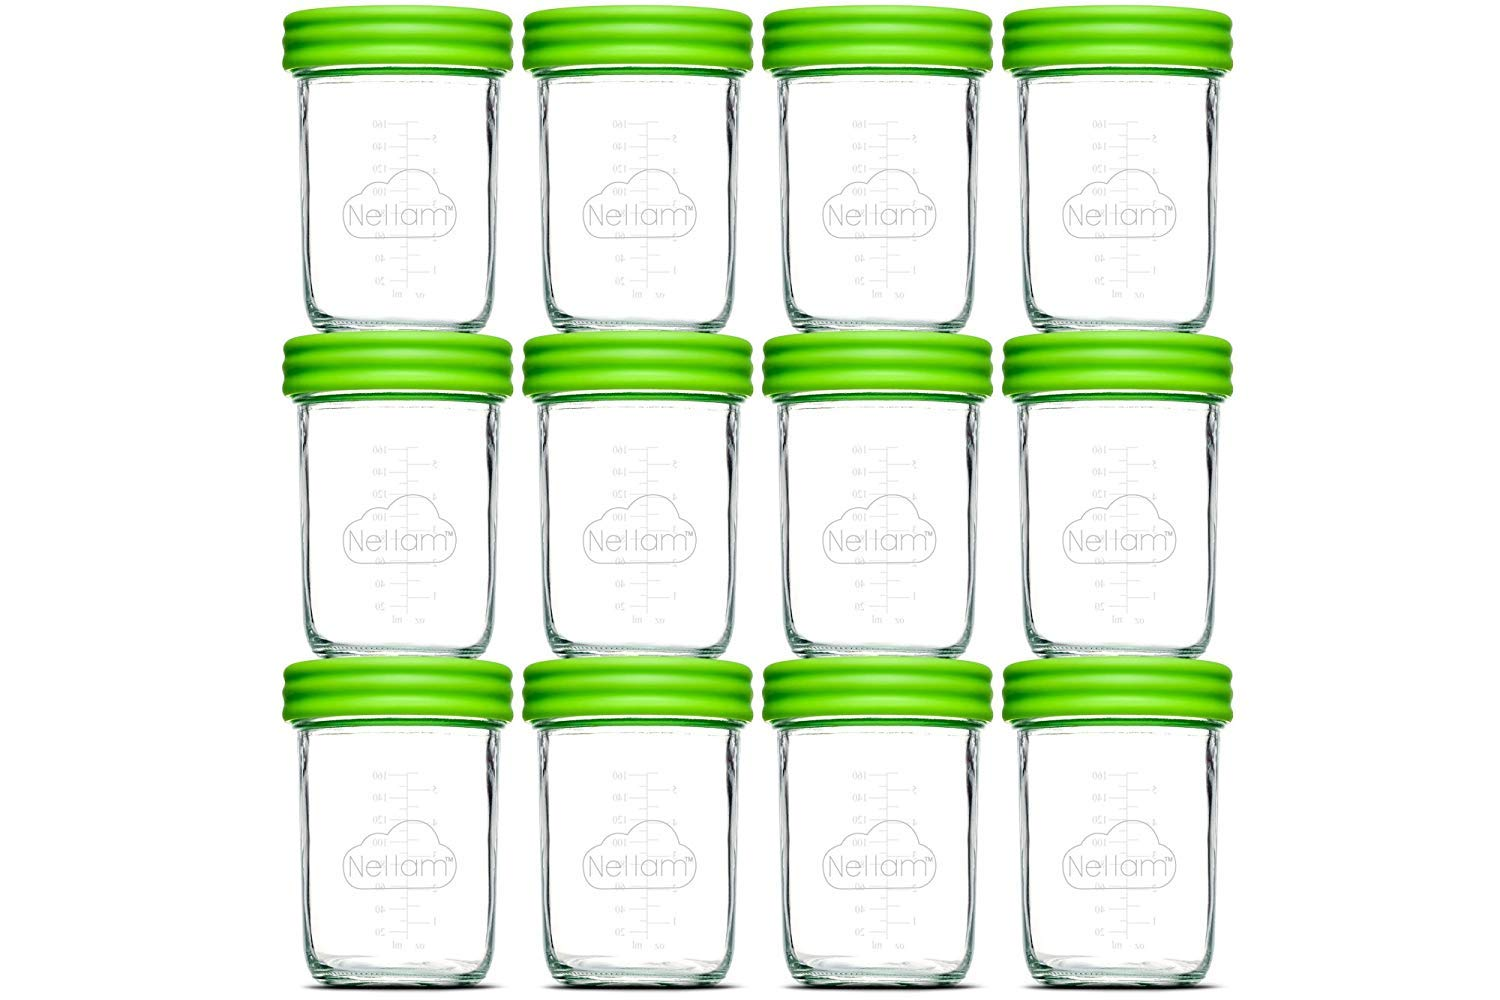 Nellam Baby Food Storage Containers - Leakproof, Airtight, Glass Jars for Freezing & Homemade Babyfood Prep - Reusable, BPA Free, 12 x 8oz Set, that is Microwave & Freezer Safe